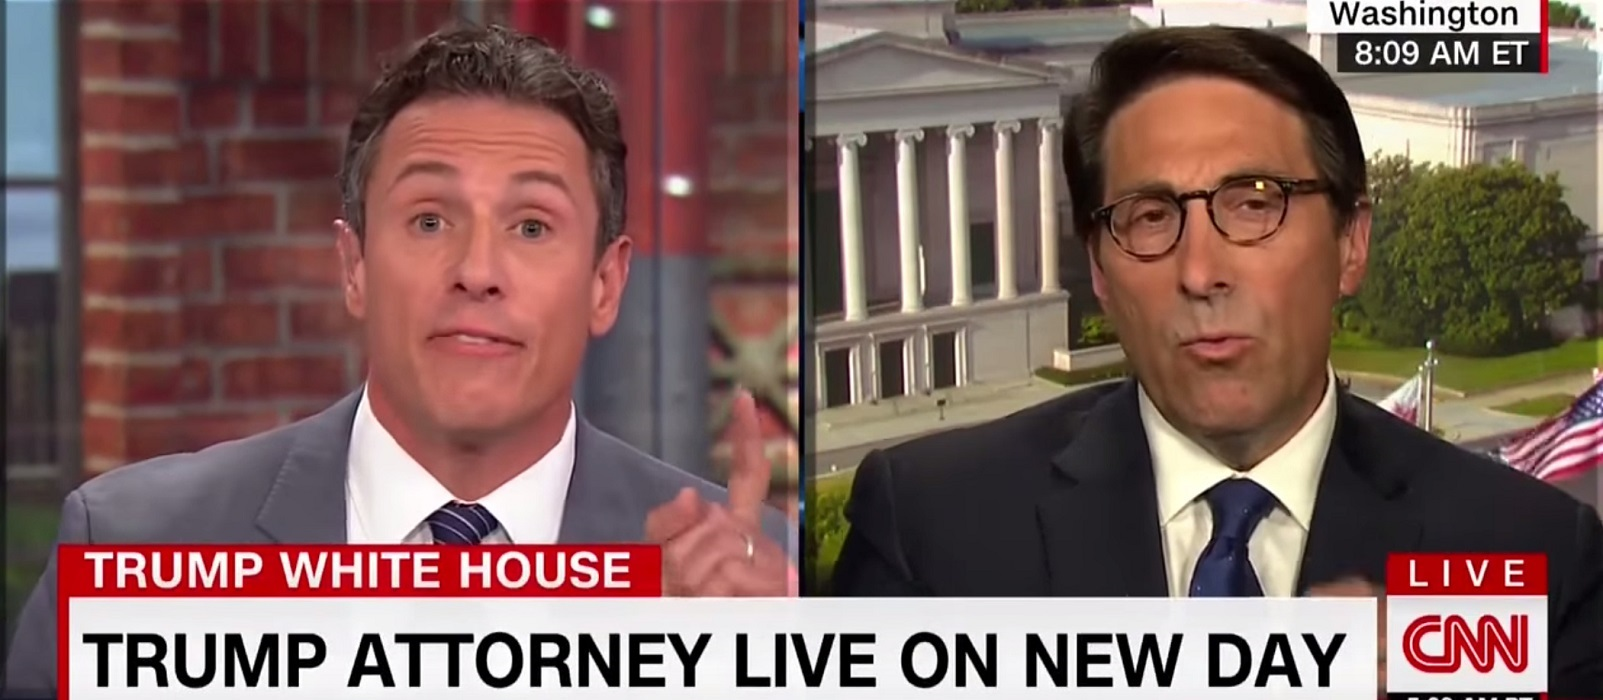 CNN's Chris Cuomo: It's Okay If Ukrainian Govt Meddles In Our Elections, But Not Russia (Video)